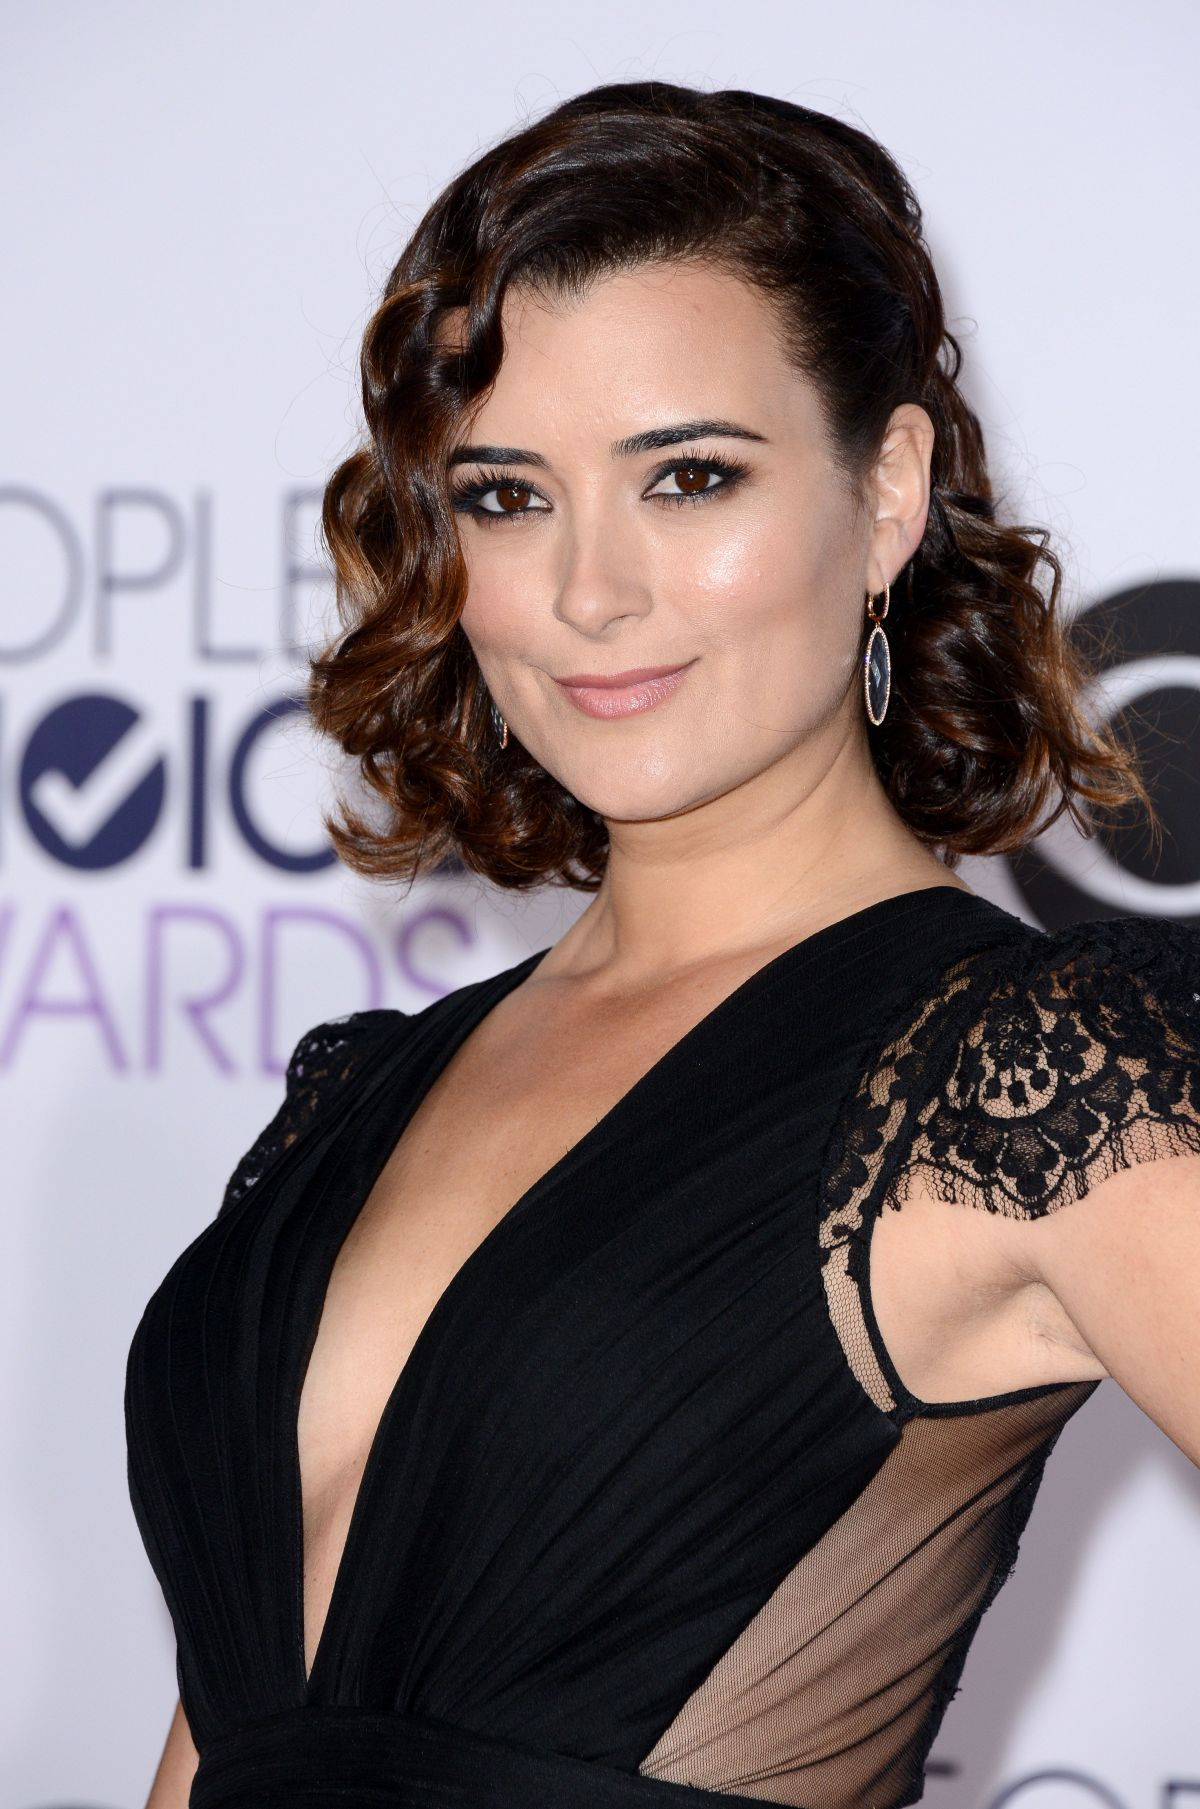 Cote de pablo people s choice awards 2015 mehr ncis guss pablo